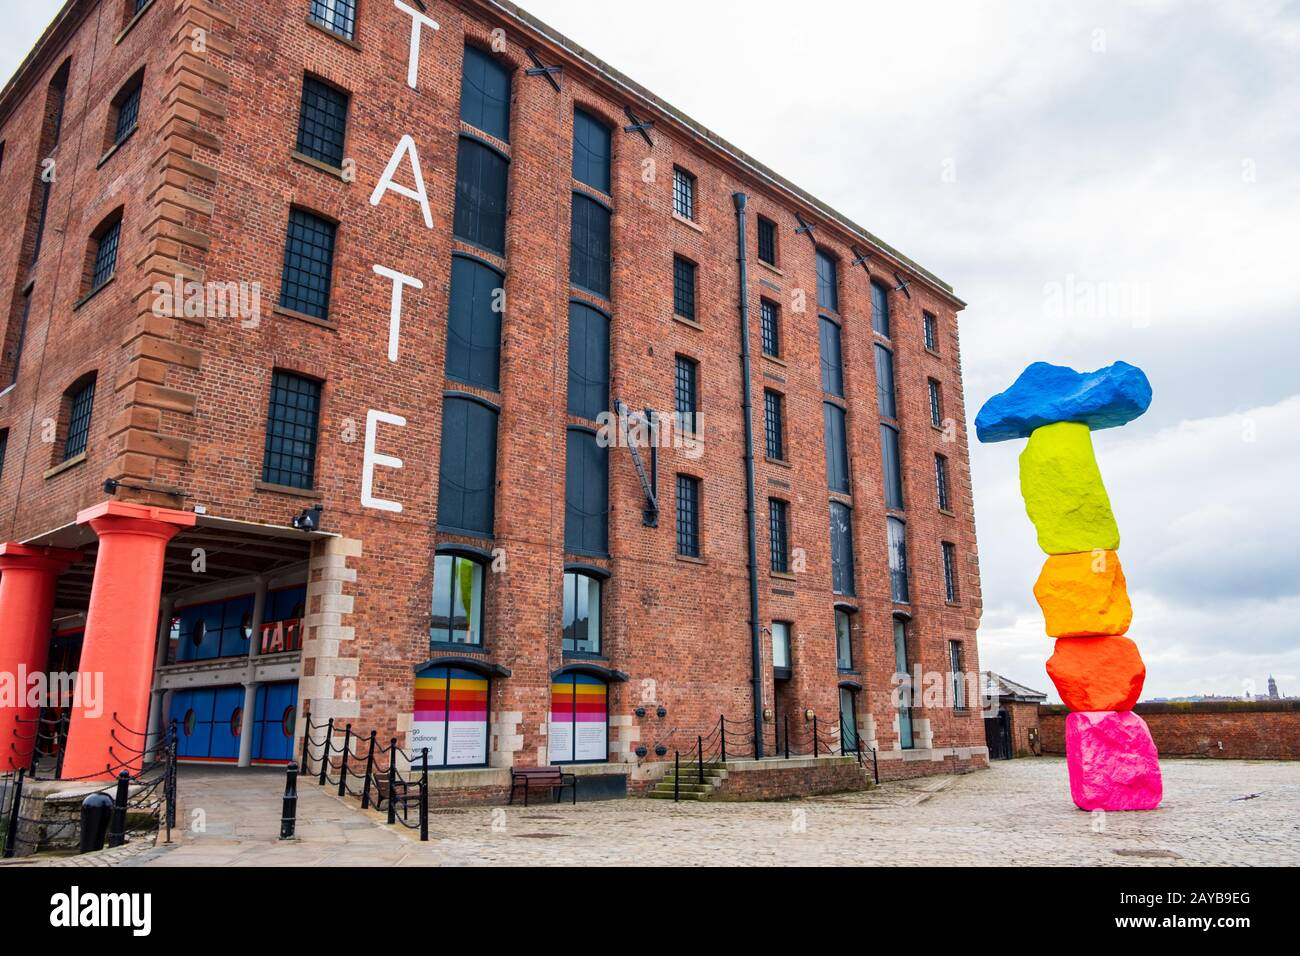 Exterior of Tate Liverpool art gallery in the Albert Dock Area in Liverpool, Merseyside, with a sculpture by Ugo Rondinone named Stock Photo